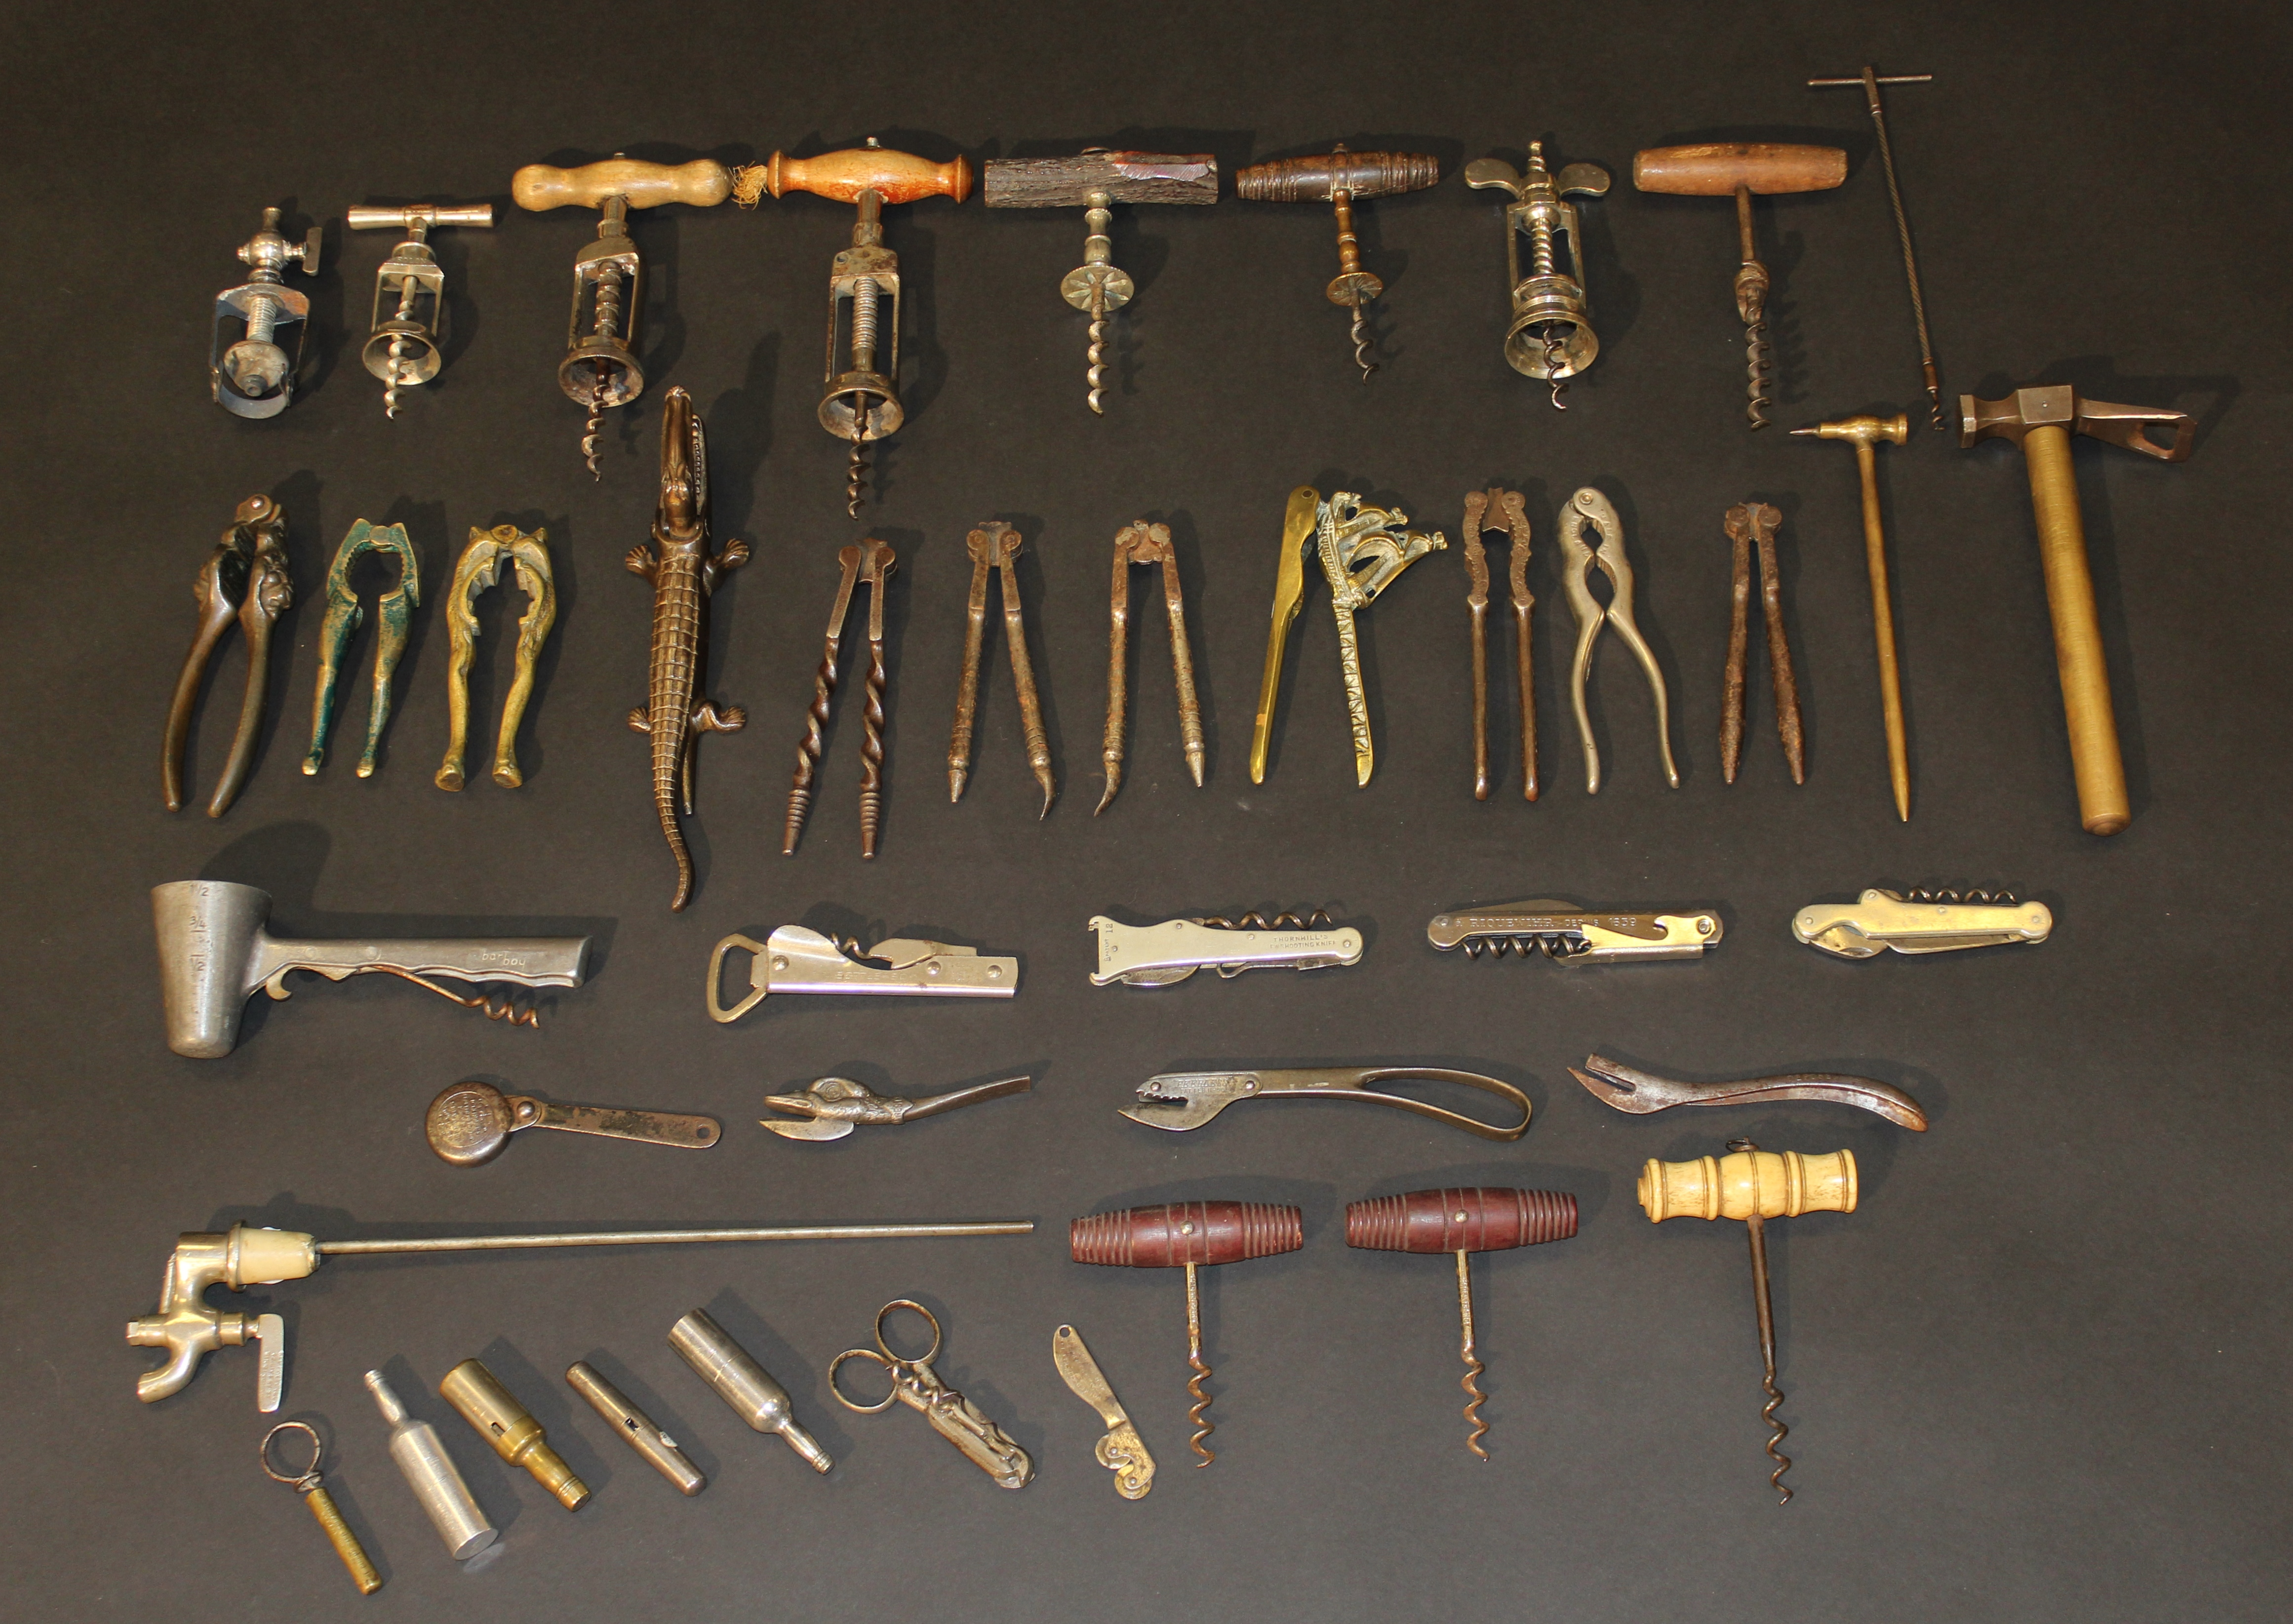 A lot of corkscrews due for sale in the Cotswolds